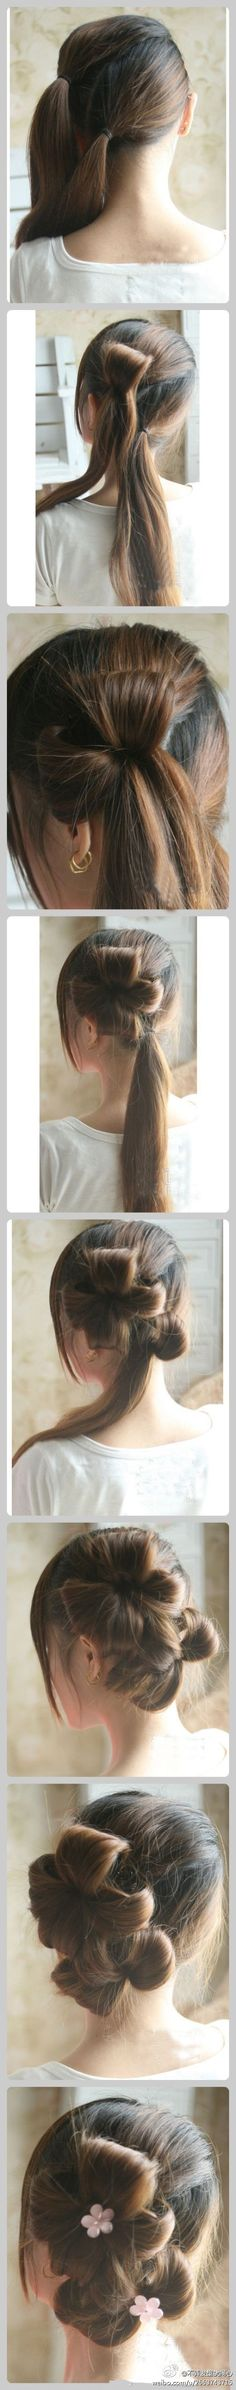 Wow, the things you can do with a simply pony tail! I wish my hair was still real long.  Gonna have to grow it out.